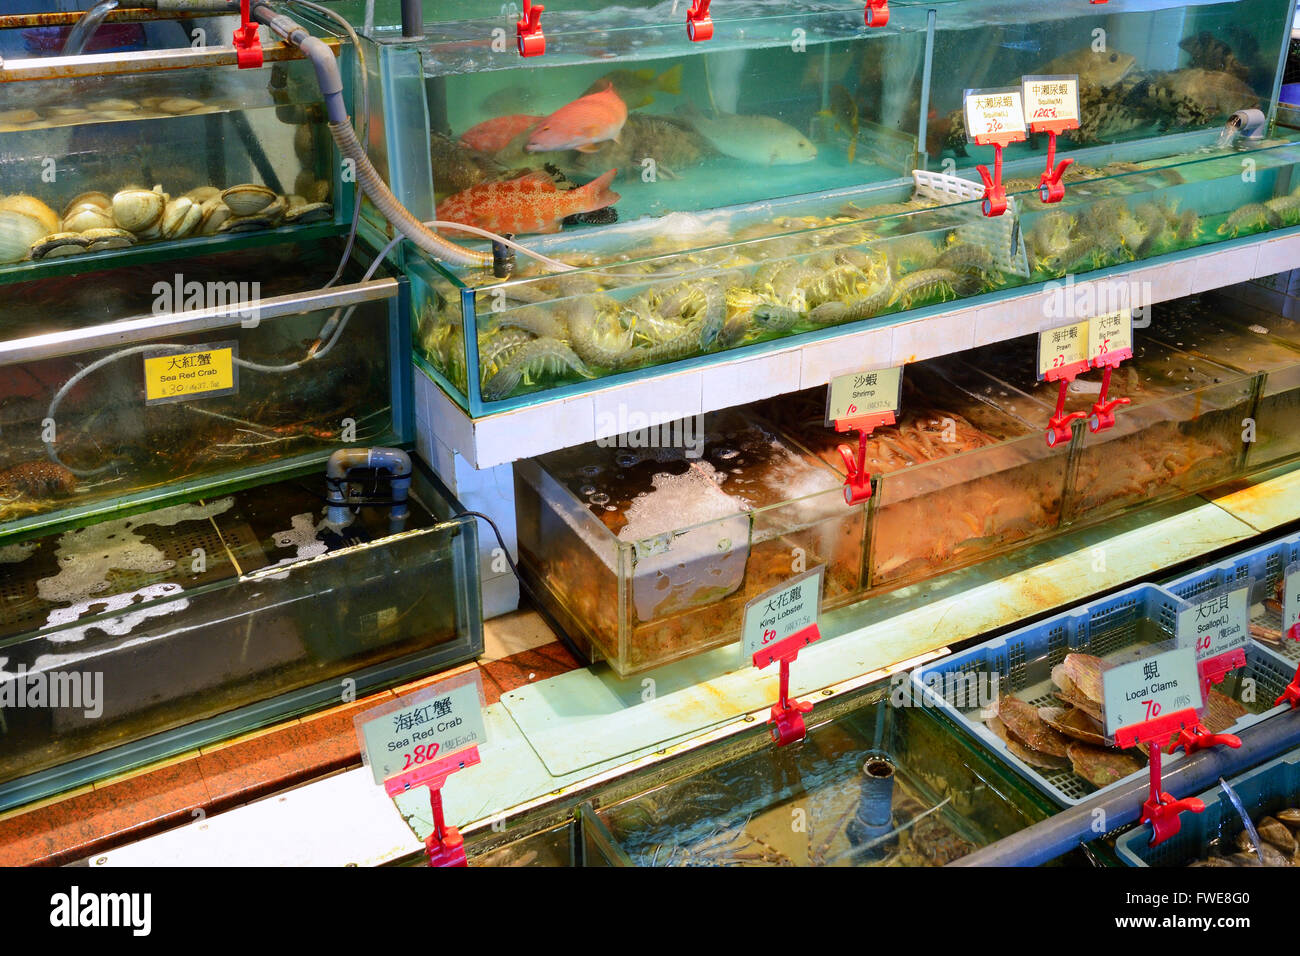 fresh, living seefood and fish, Seafood restaurants, harbour, Lamma Island, Hongkong, China - Stock Image